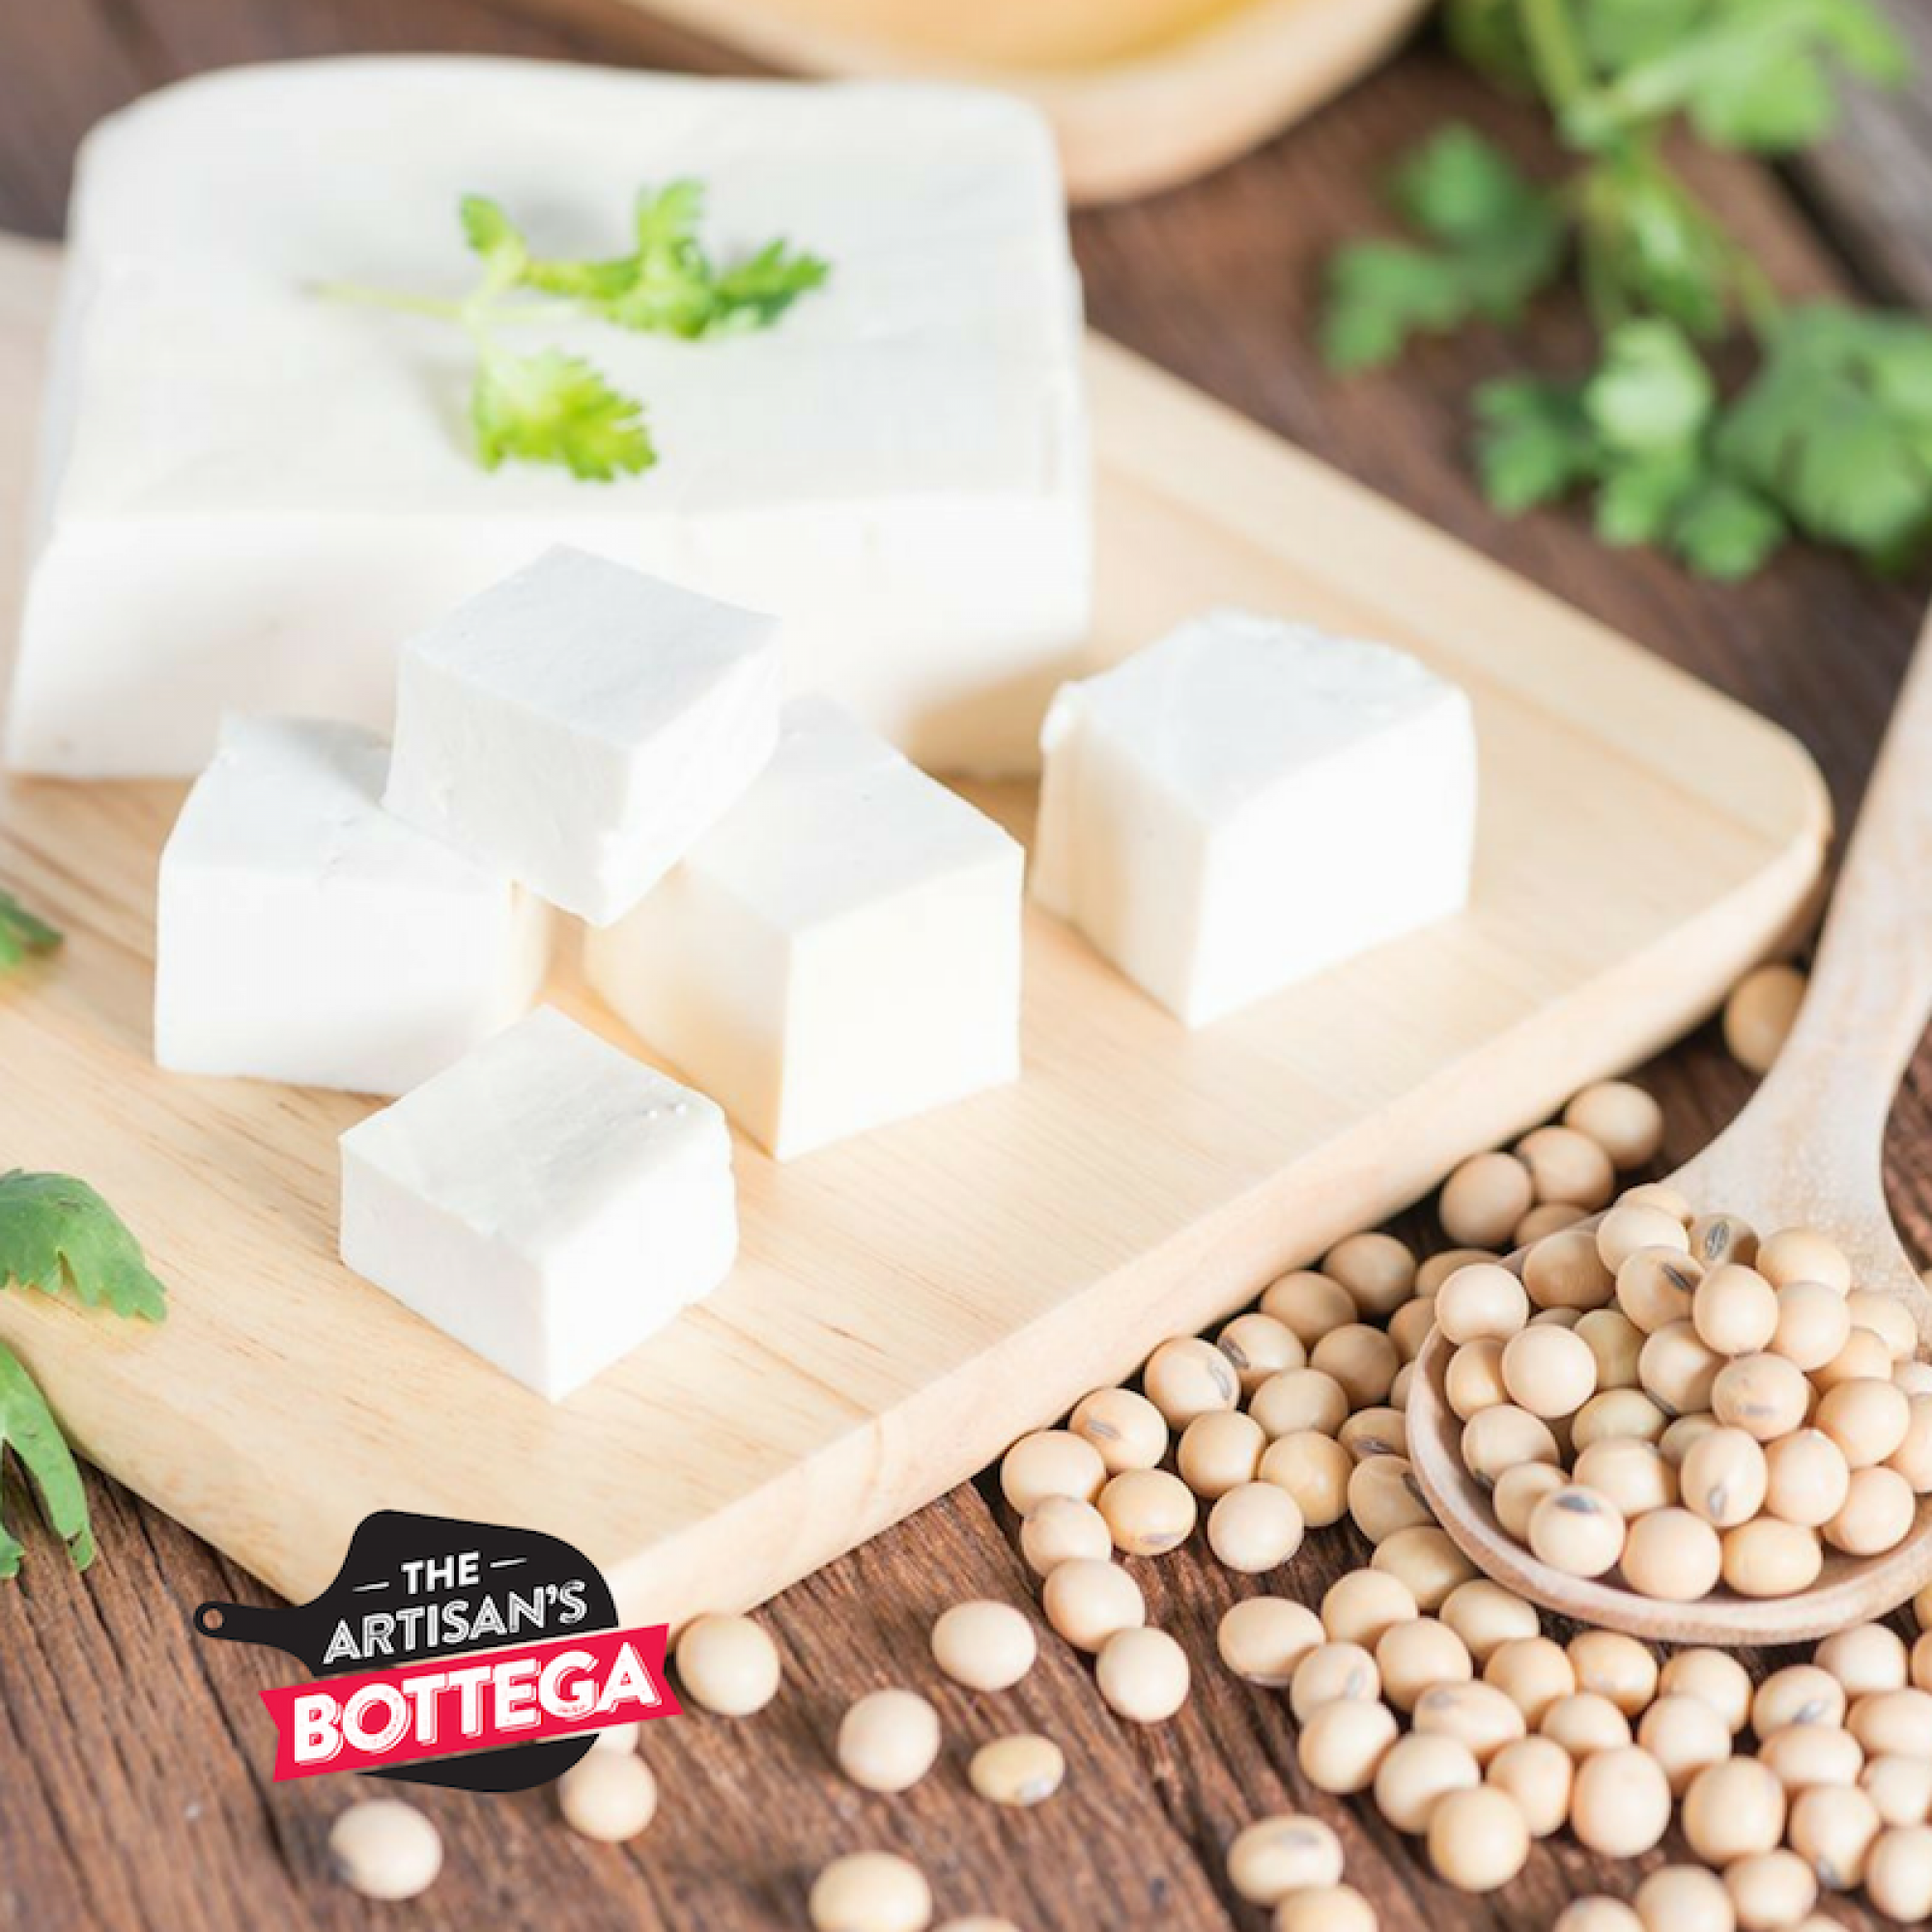 GDL Coagulant for Tofu Kit - The Artisan's Bottega